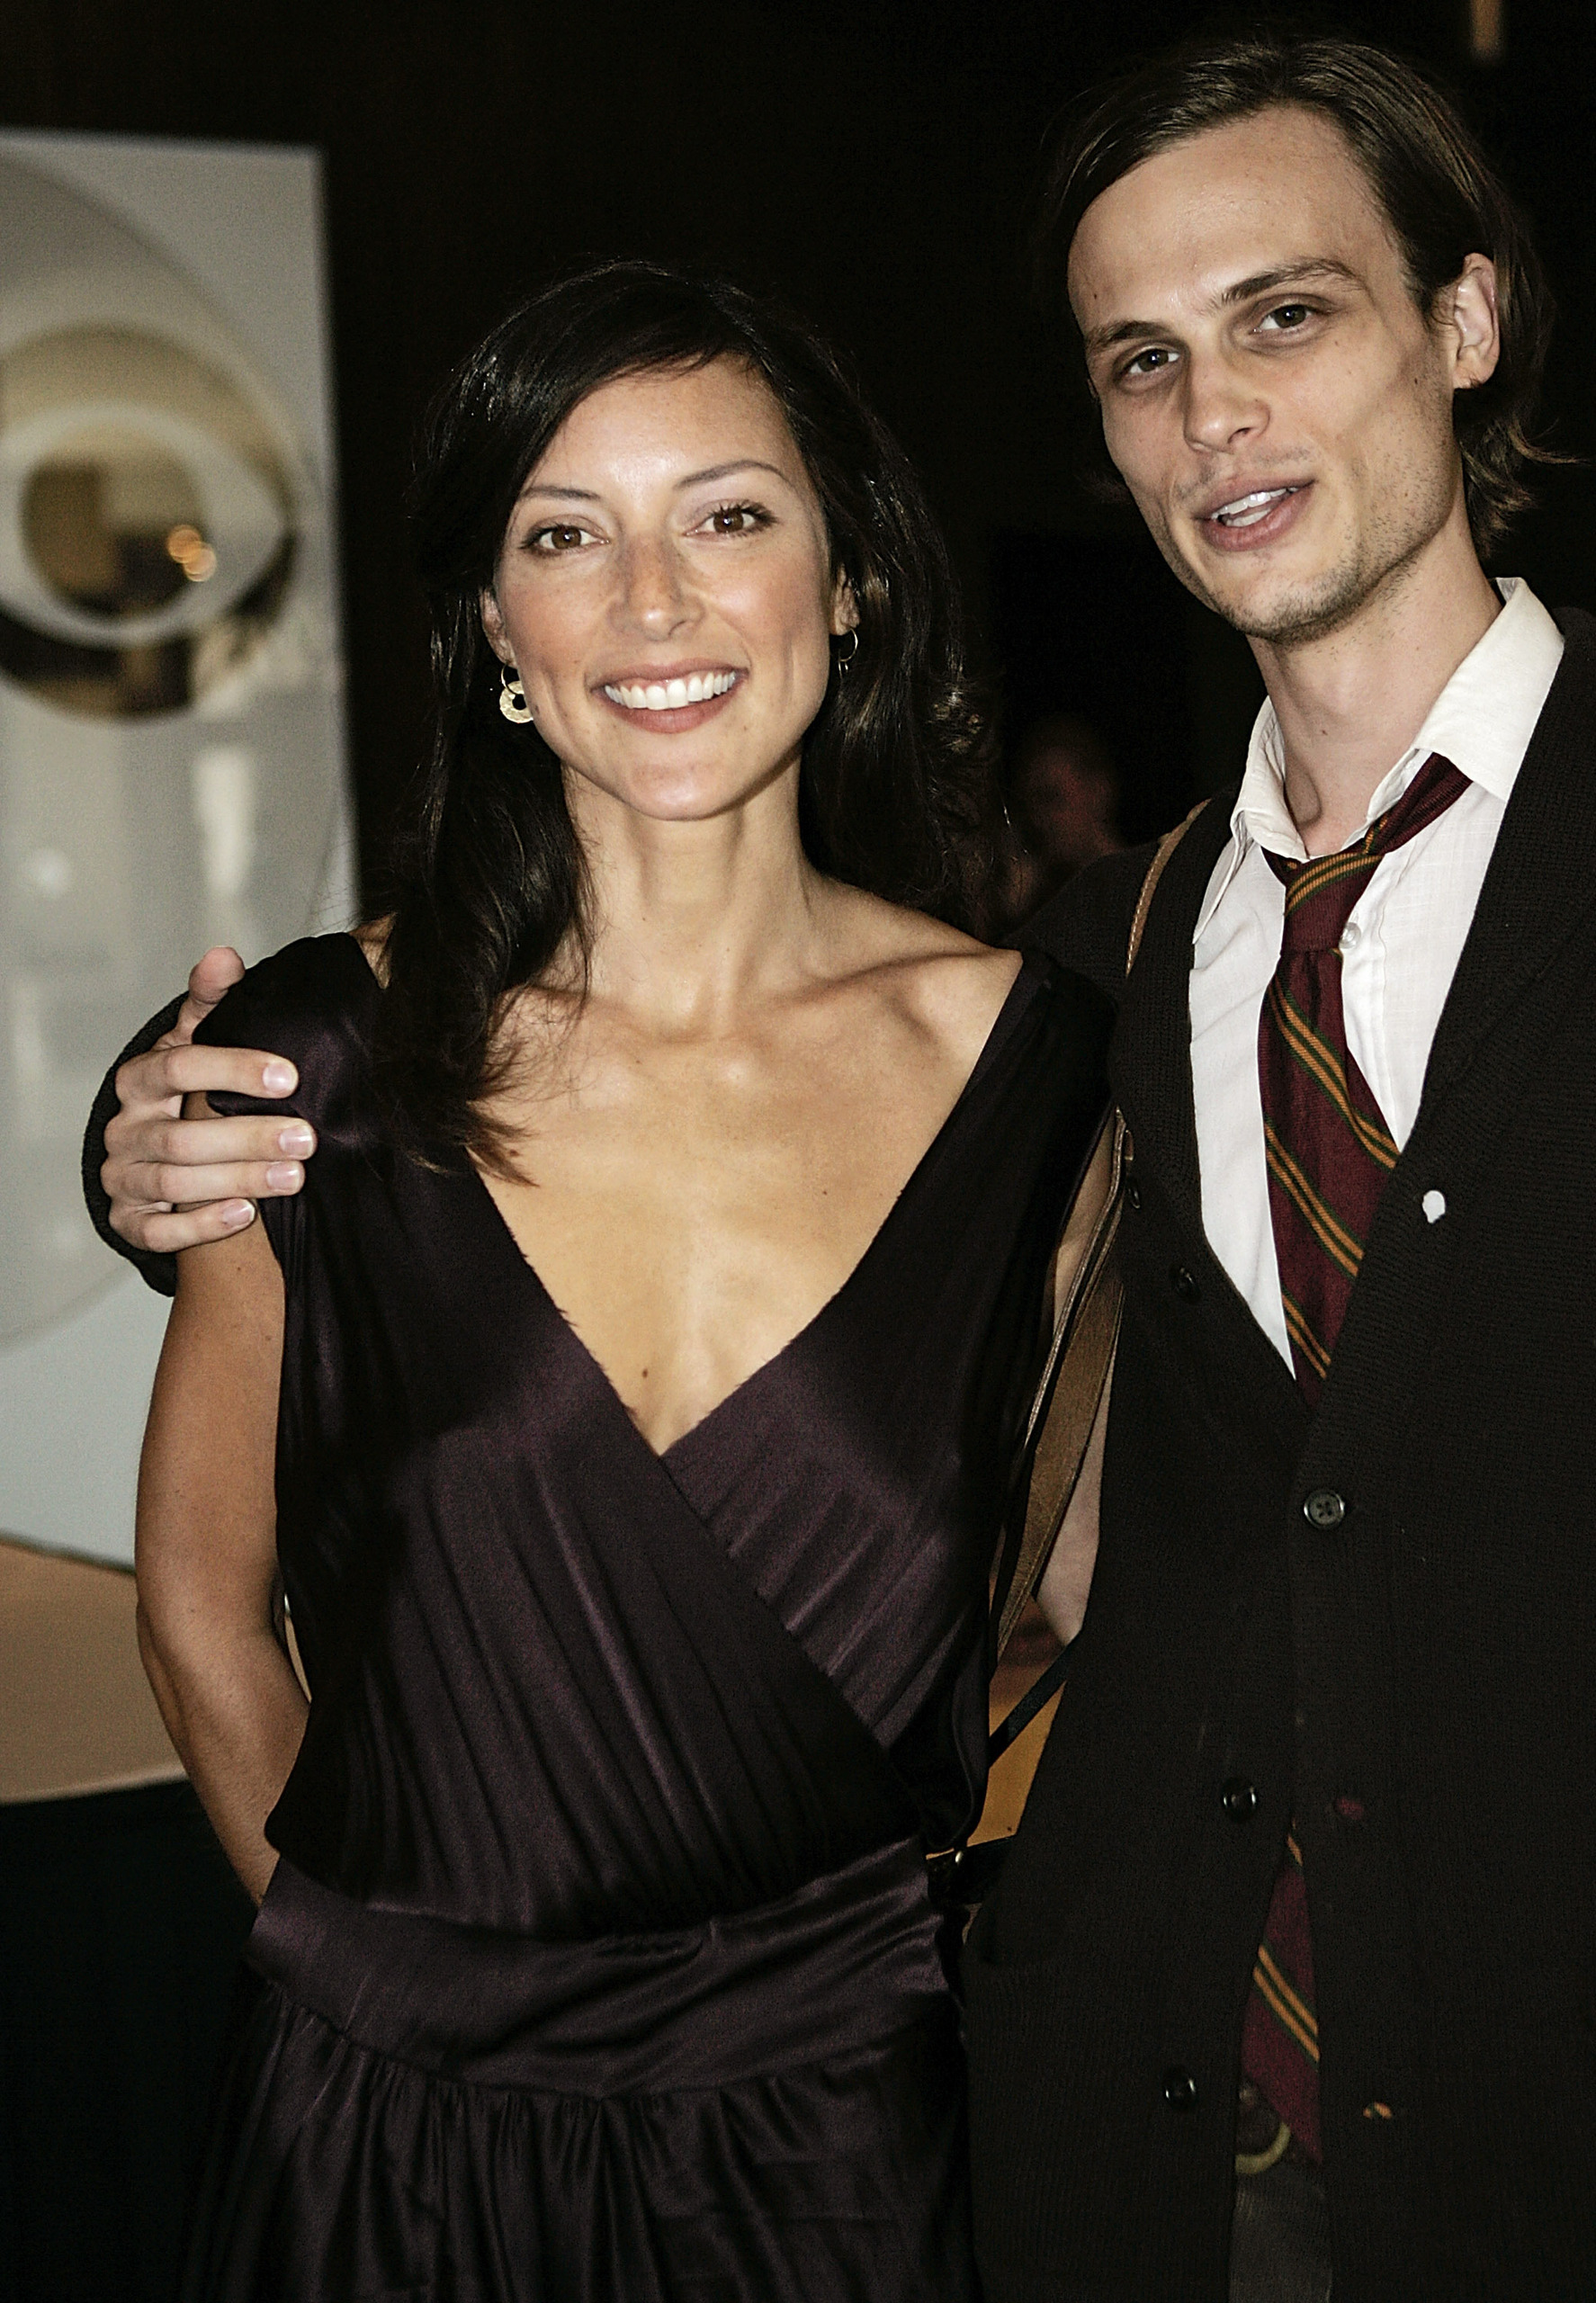 MGG&Lola Glaudini @ CBS TCA summer 2005 press-tour - HQ